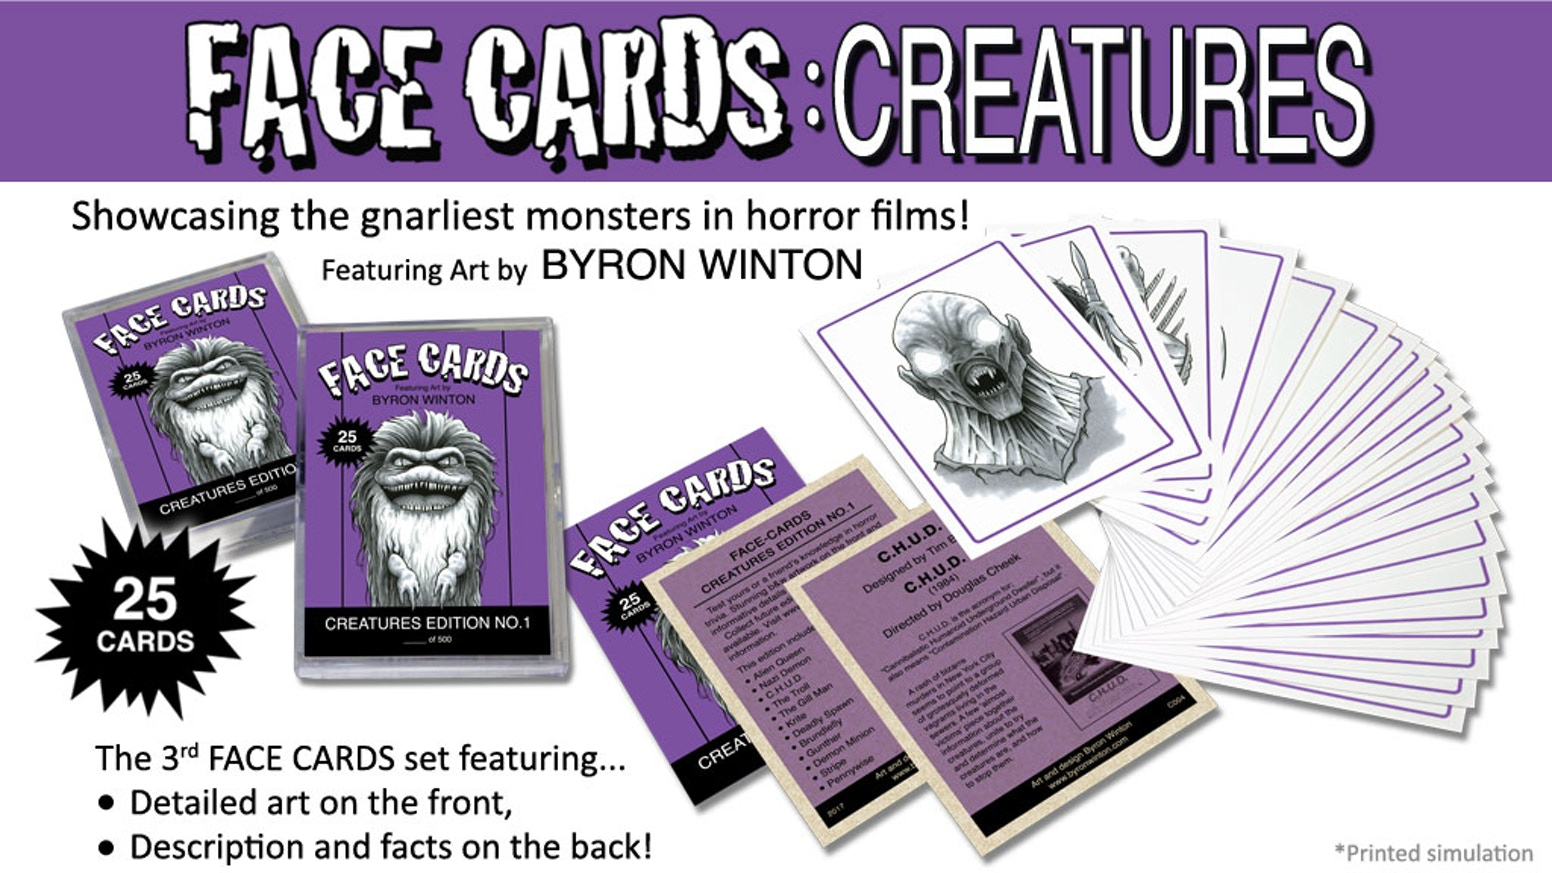 25 Trading Card Set. Artistic renditions of the gnarliest creatures in horror films.